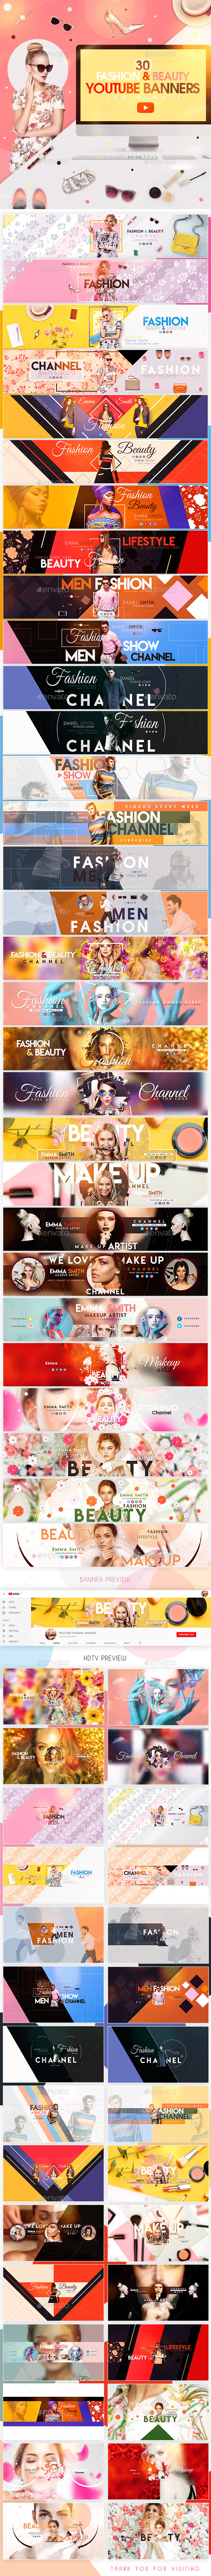 YouTube Bundle - 30 Creative Beauty & Fashion YouTube Banners - YouTube Social Media